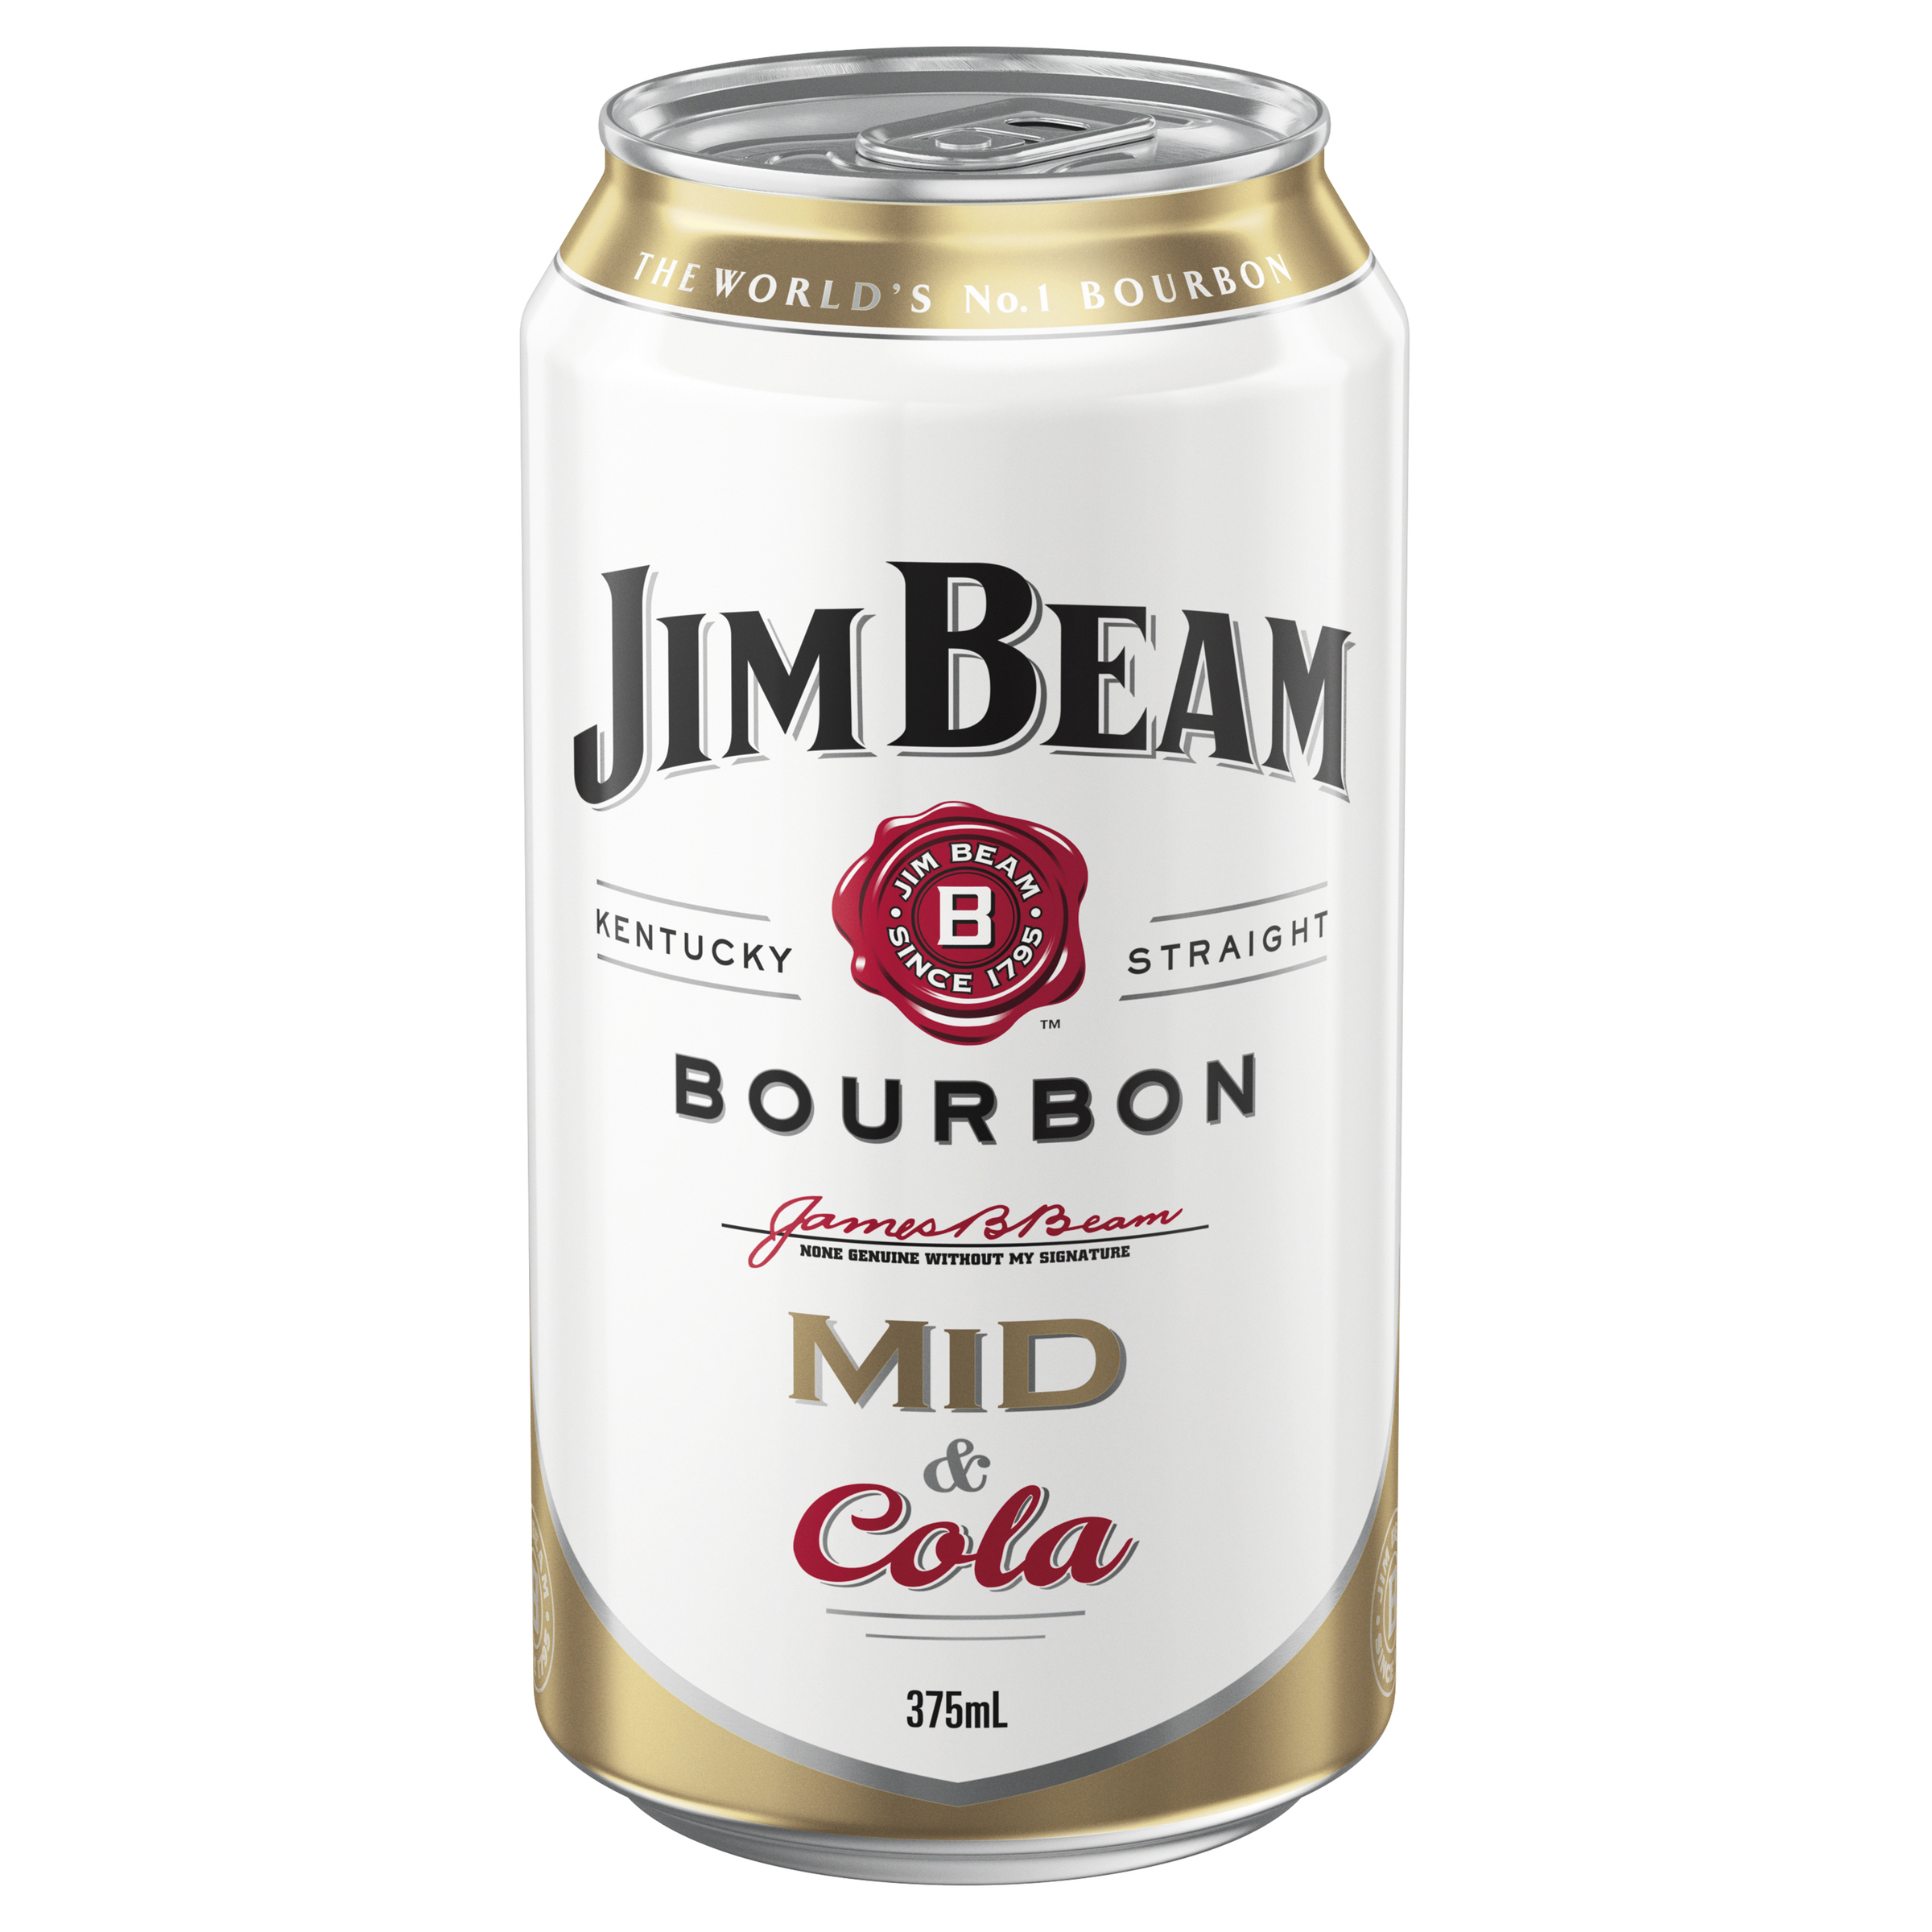 JIM BEAM &COLA MID CAN